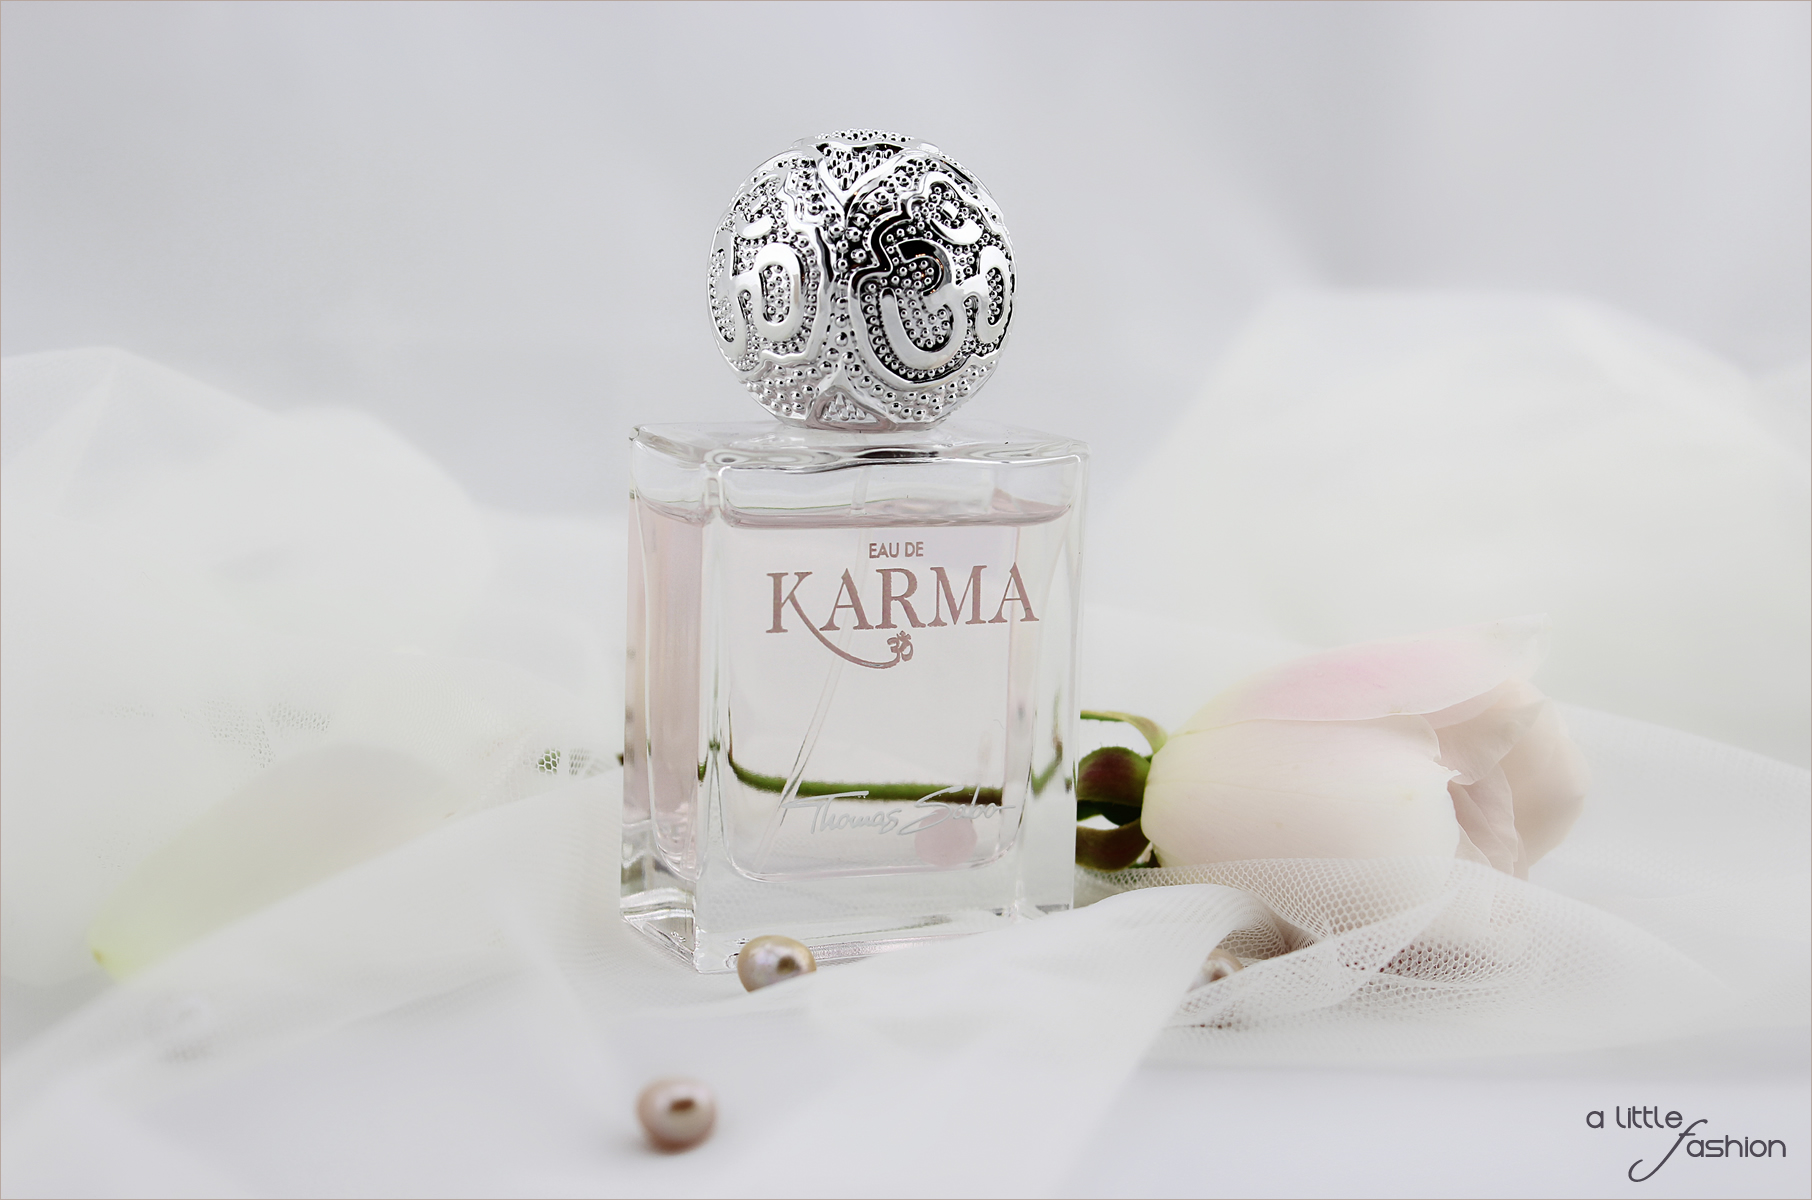 beauty_thomas-sabo_karma_parfum_eu-de-toilette_review0